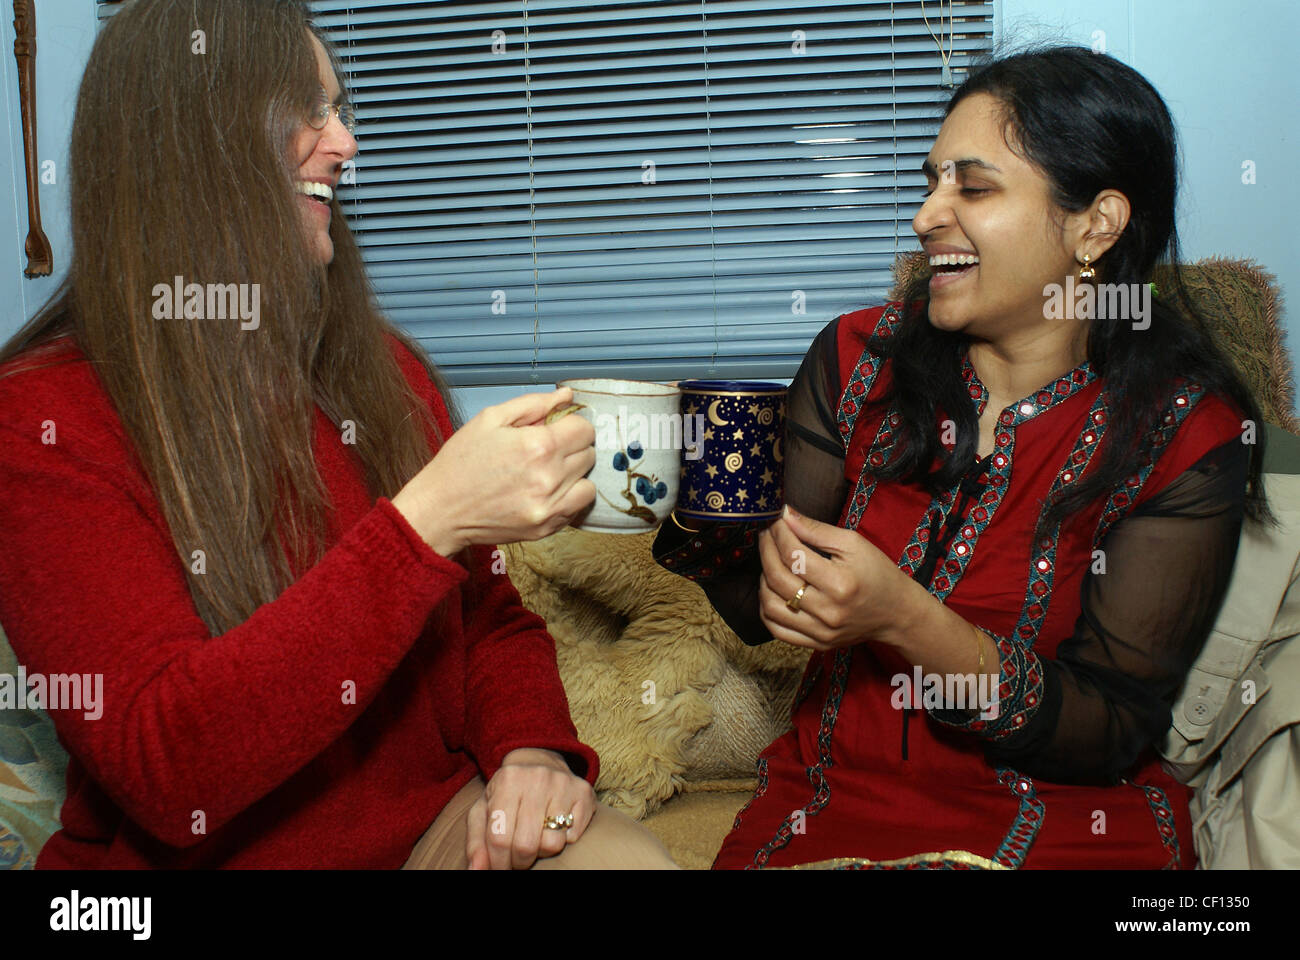 Friendly women from different cultures enjoying a coffee break. - Stock Image